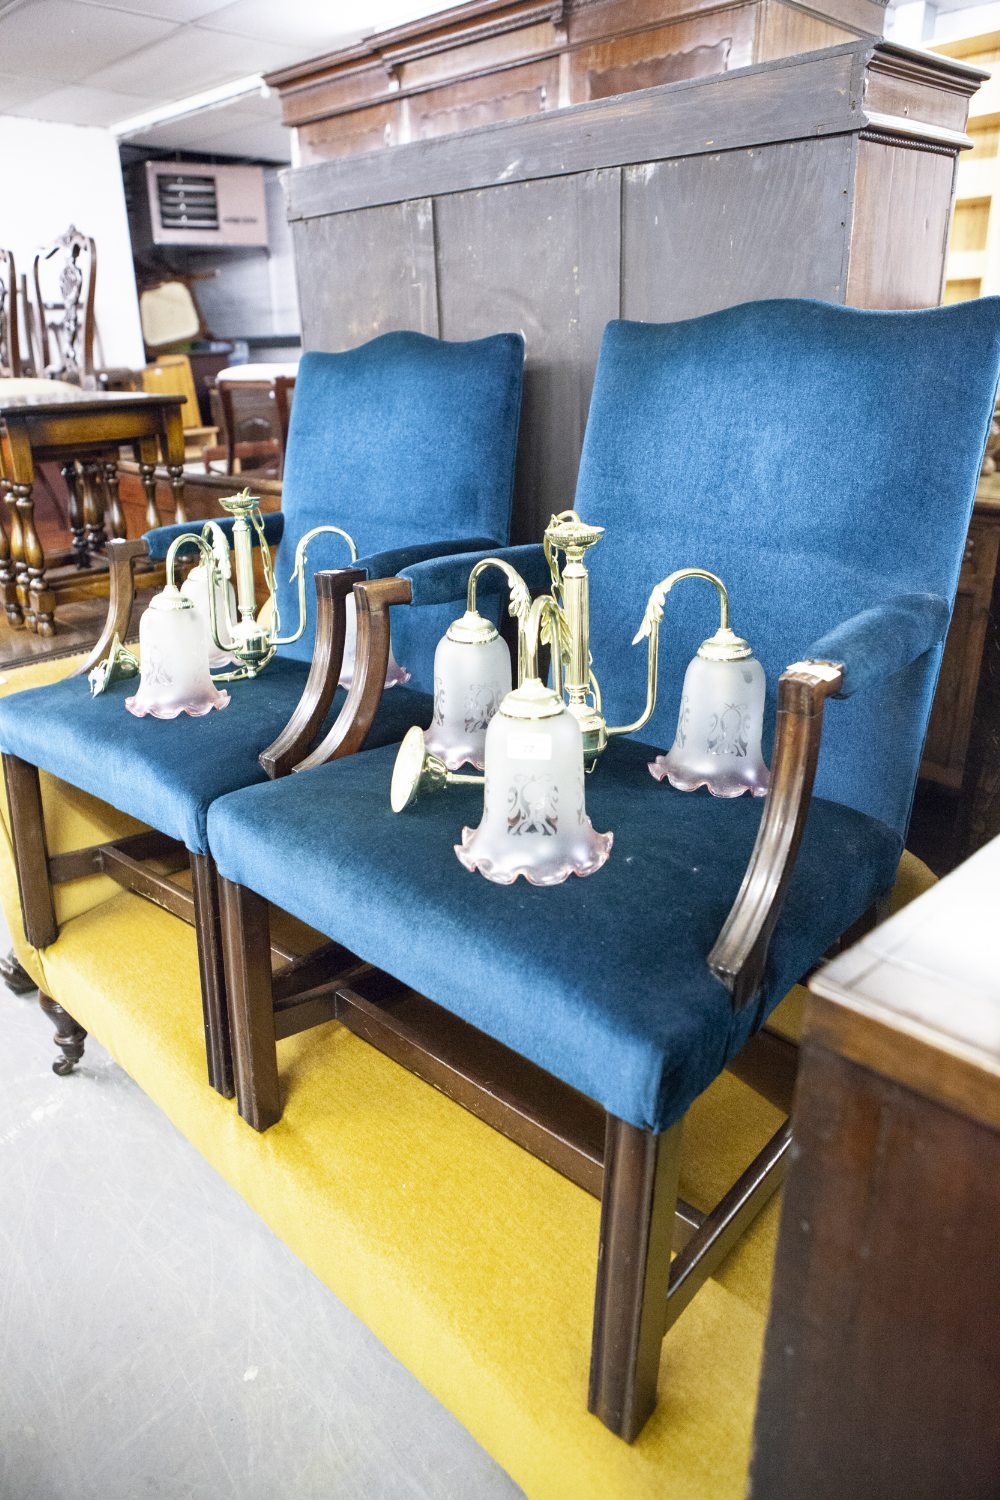 Lot 51 - A PAIR OF ANTIQUE MAHOGANY LIBRARY OPEN ARMCHAIRS, WITH BACKS, ELBOW REST AND SEATS COVERED IN